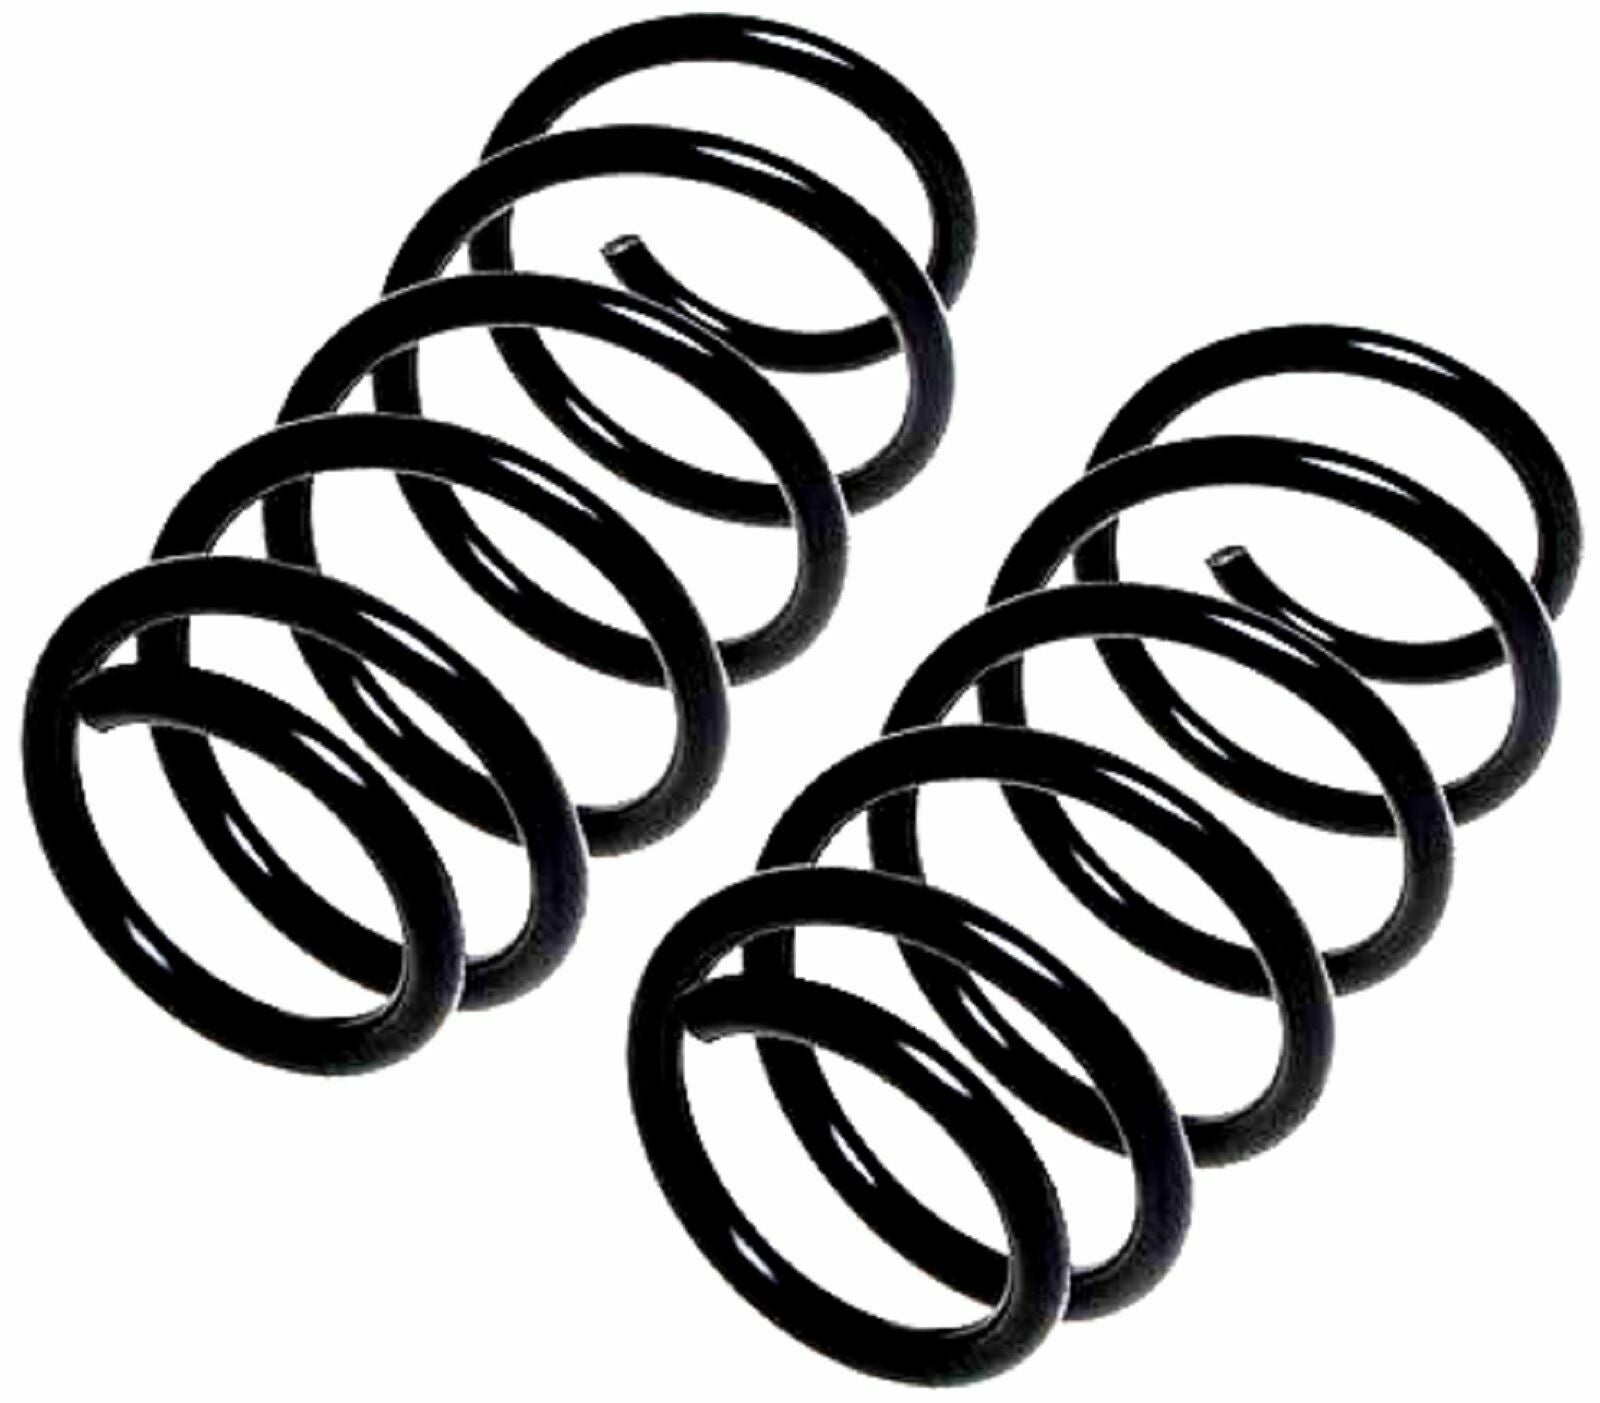 Vauxhall Astra H Twintop Front Springs (Pair) Ident CX New OE Part 93189289